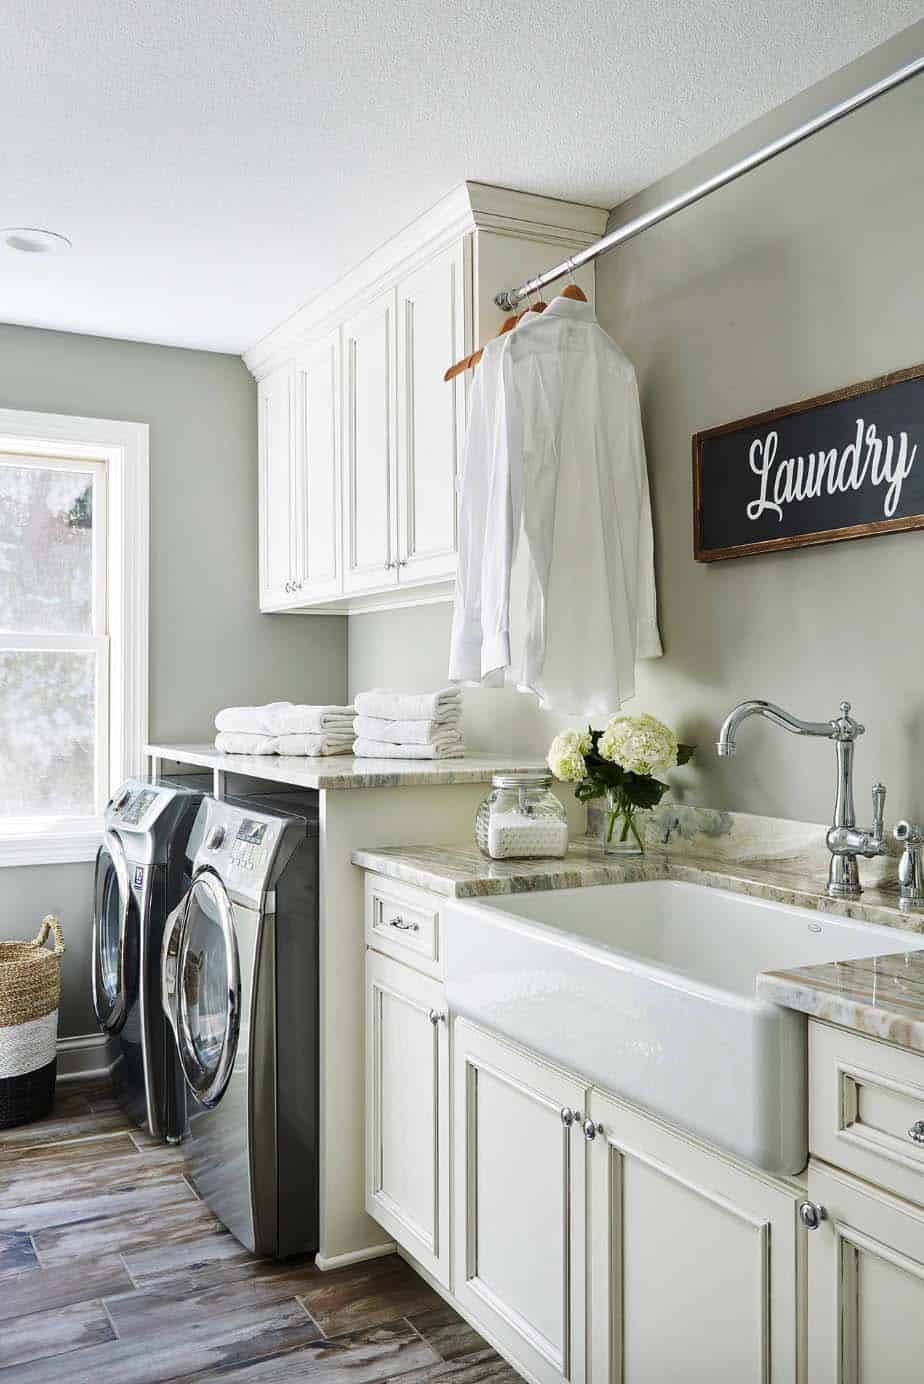 45 Functional And Stylish Laundry Room Design Ideas To Inspire on Laundry Decorating Ideas  id=28042